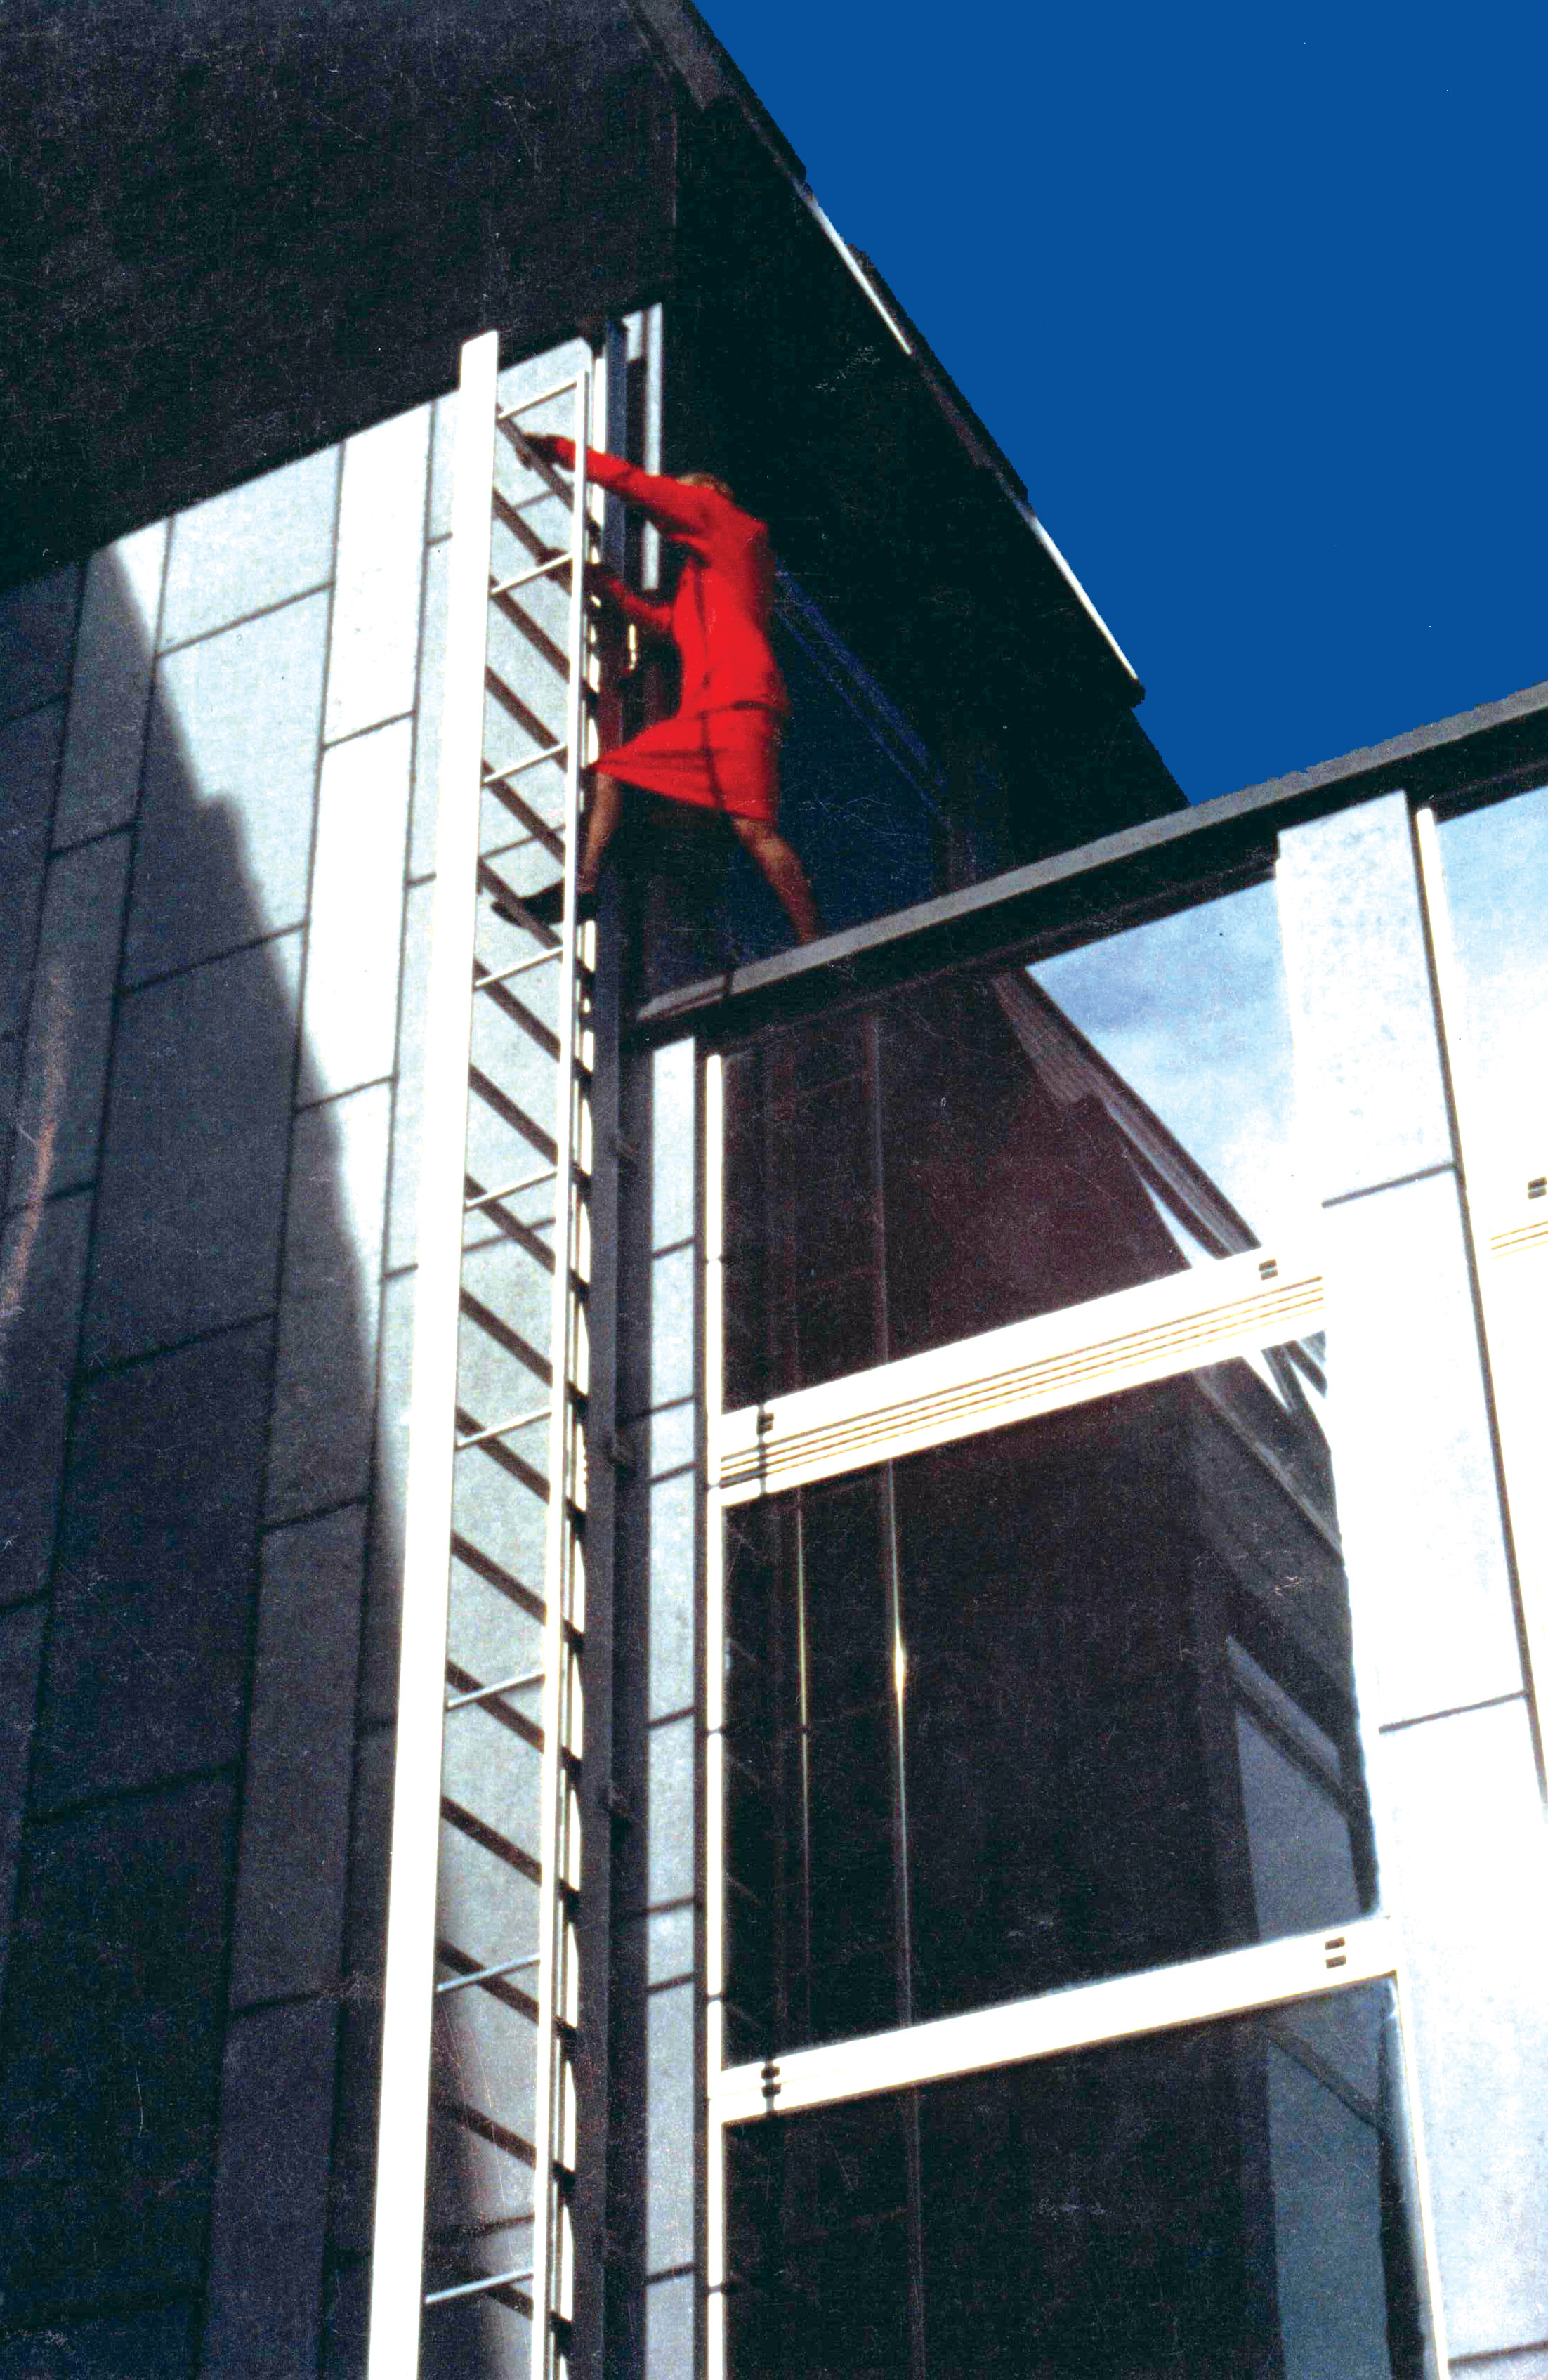 The JOMY Retractable Fire Escape Ladder is ideally suited for Evacuation in emergency situations and has a lot of outstanding features